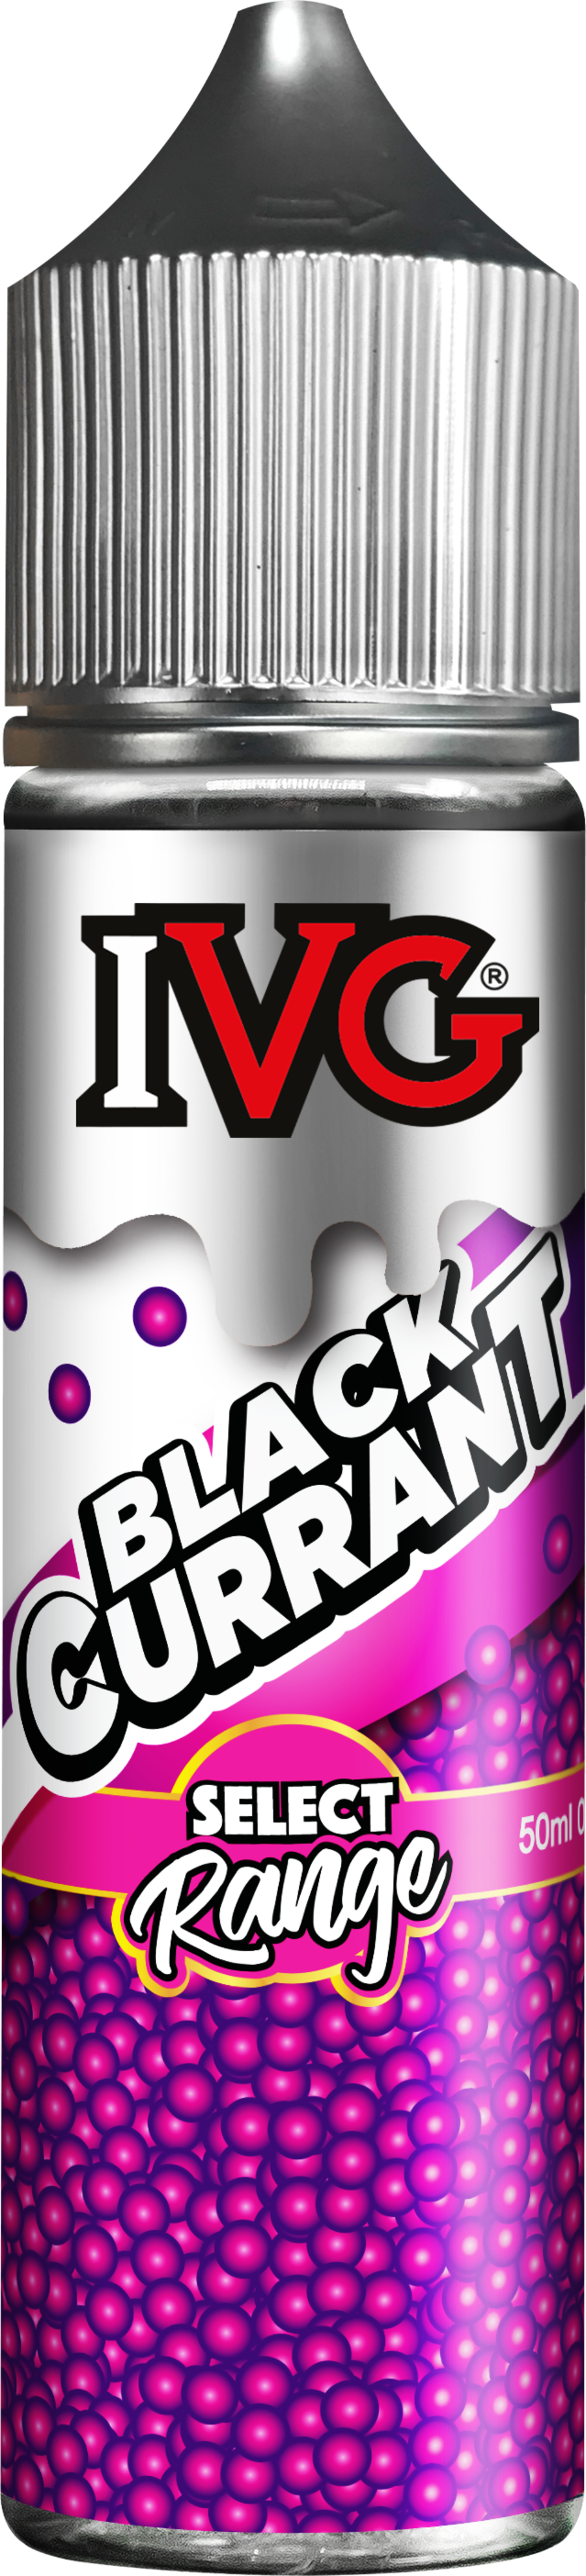 Blackcurrant By I VG Select 50ml